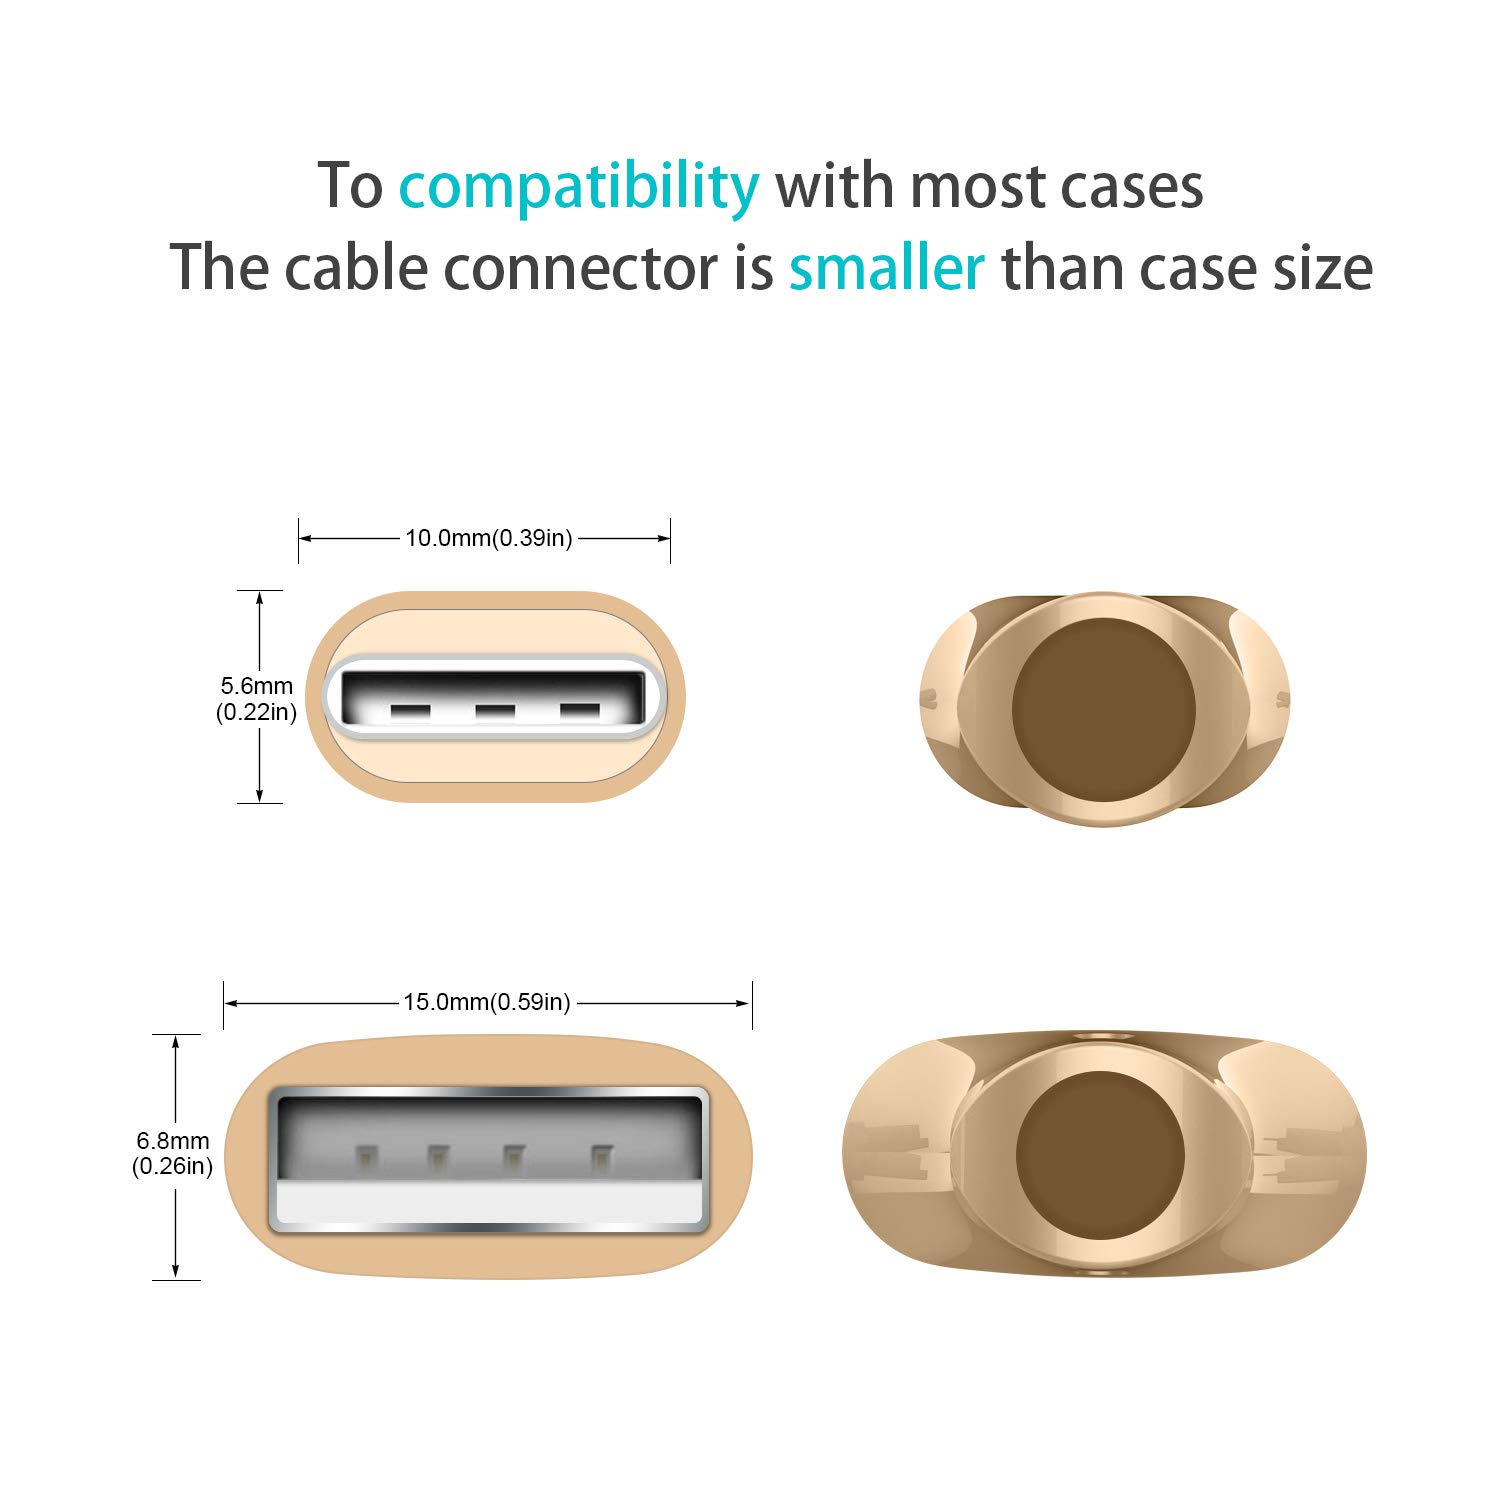 Note 9 8 Seamless USBC End Tip AGVEE 3A Fast USB-C Charging Cable A10e 4 Pack 3ft Braided Type-C Charger Phone Cord for Samsung Galaxy S10 S10e S9 S8 G7 G8 V20 V30 ThinQ Gold LG Stylo 4 5